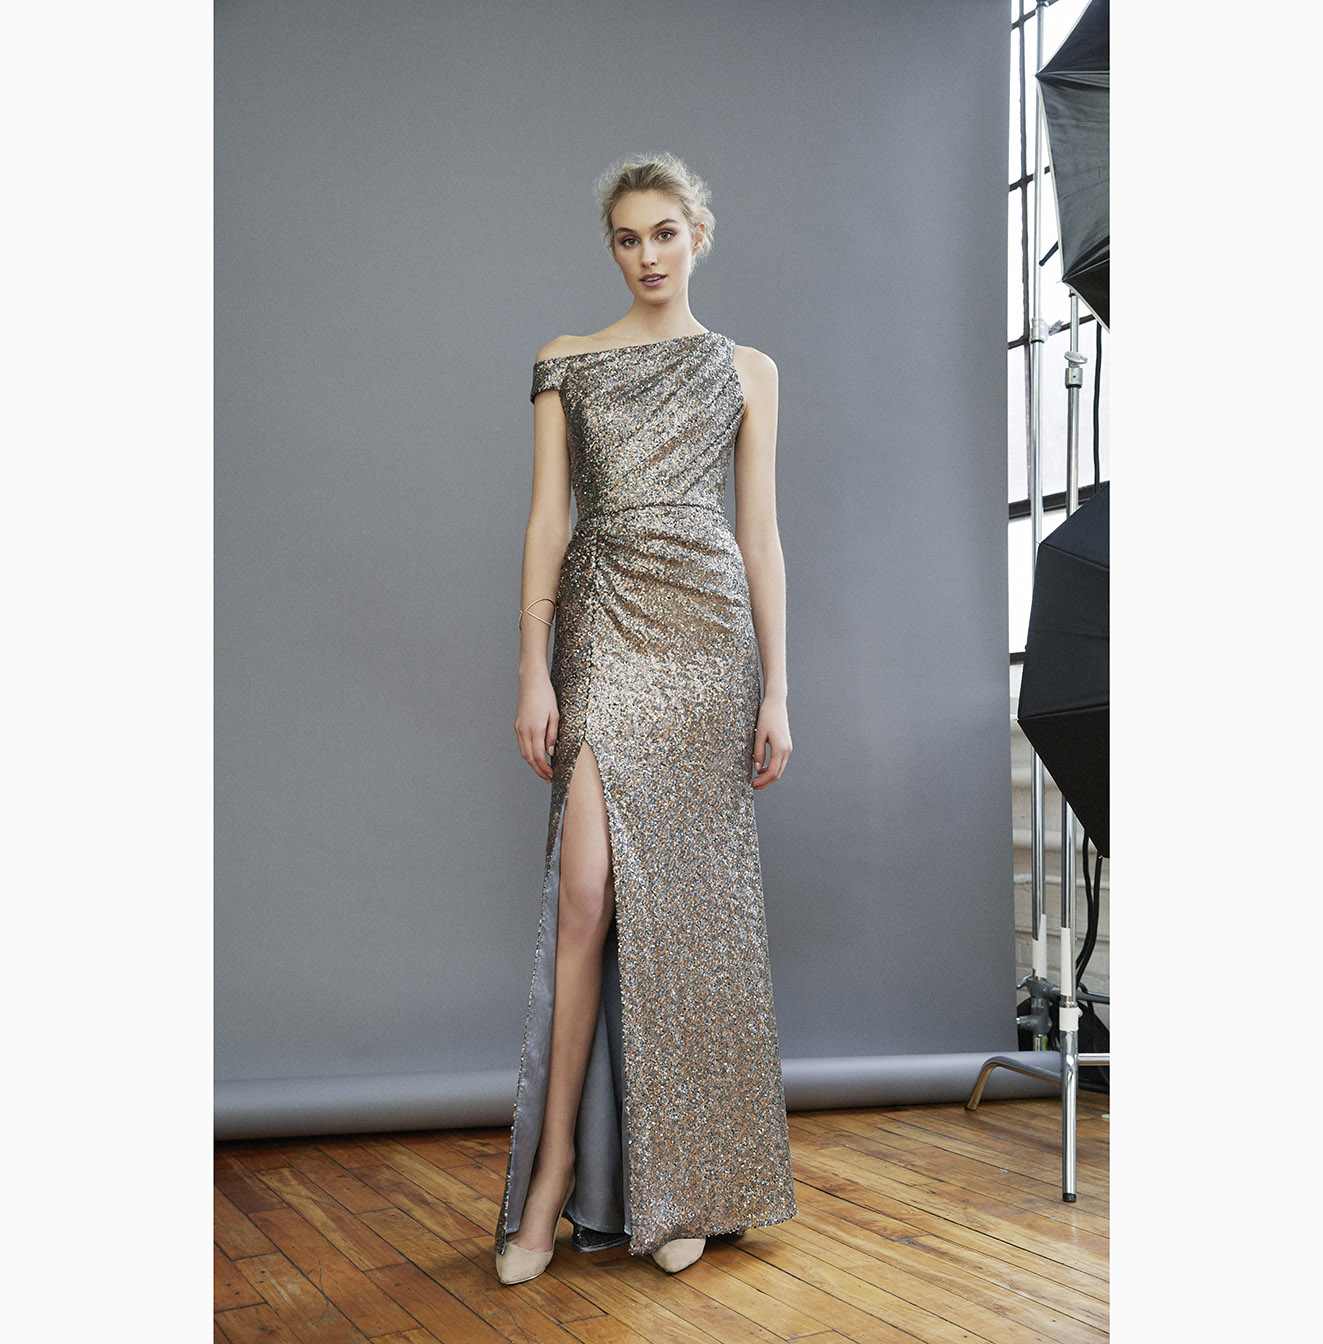 7f21aa38ff0 Gown. Selection of elegant and chic formal dresses   designer ...